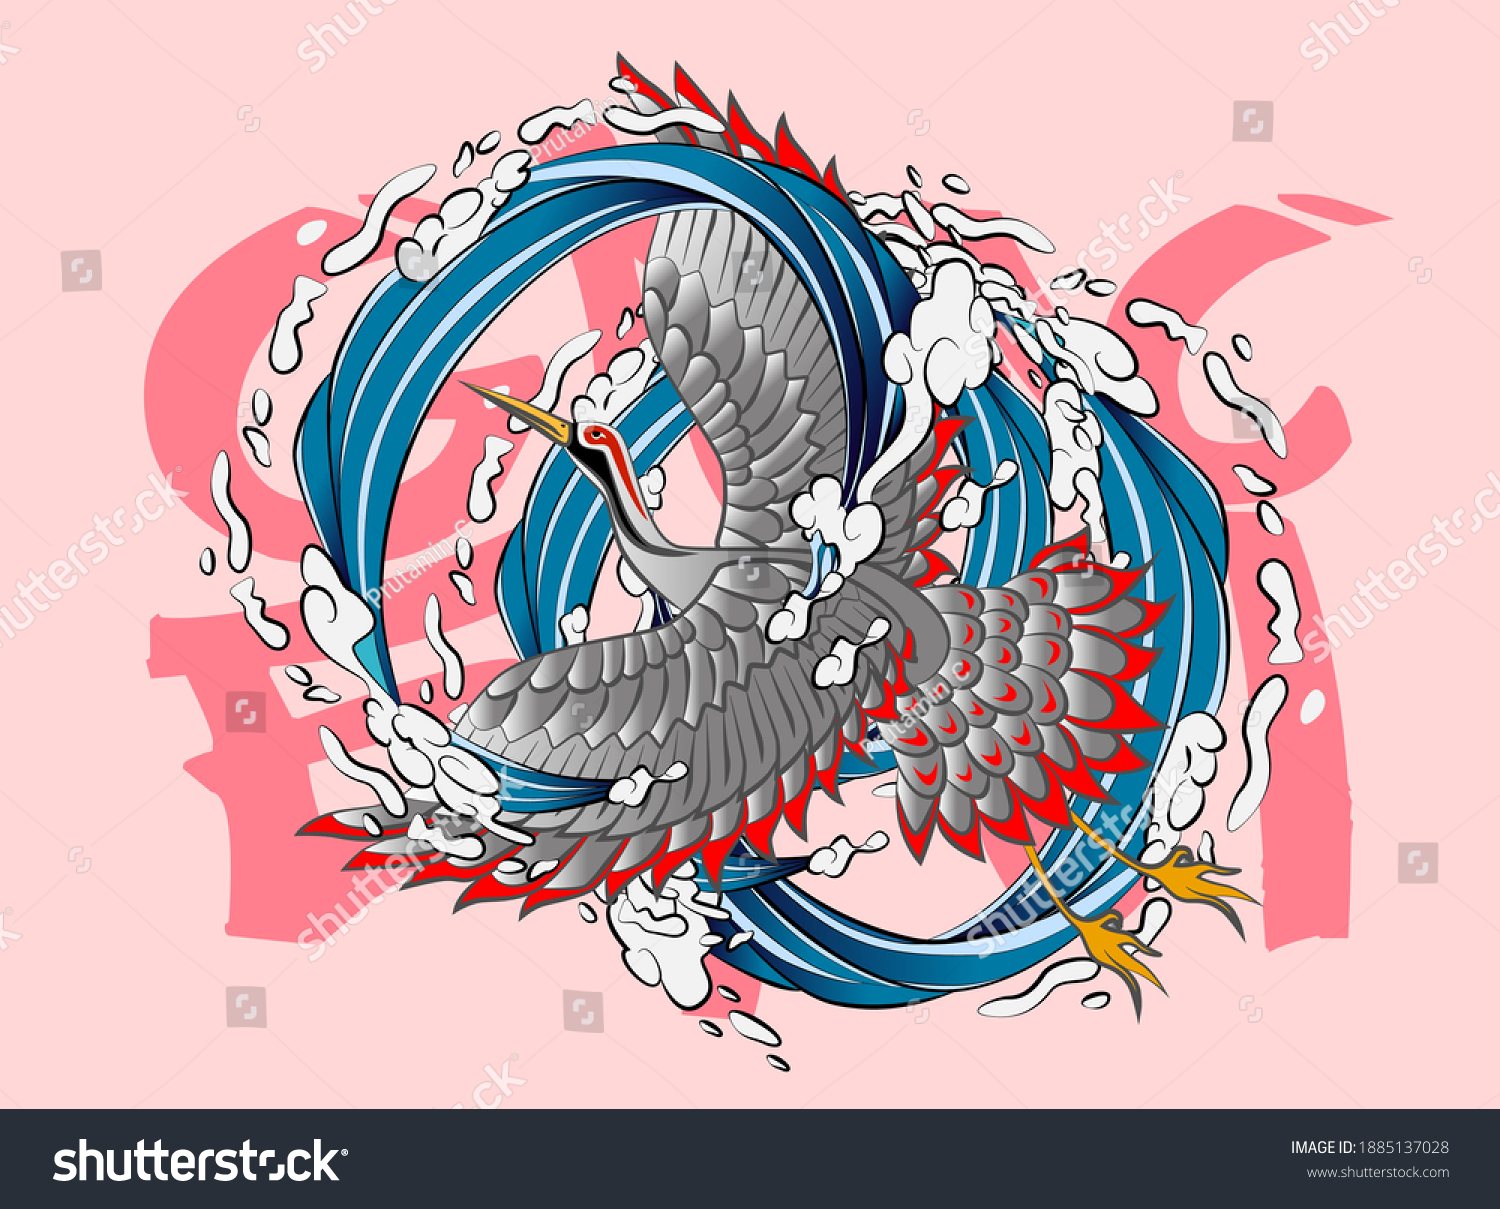 stock-vector-crane-illustration-design-f